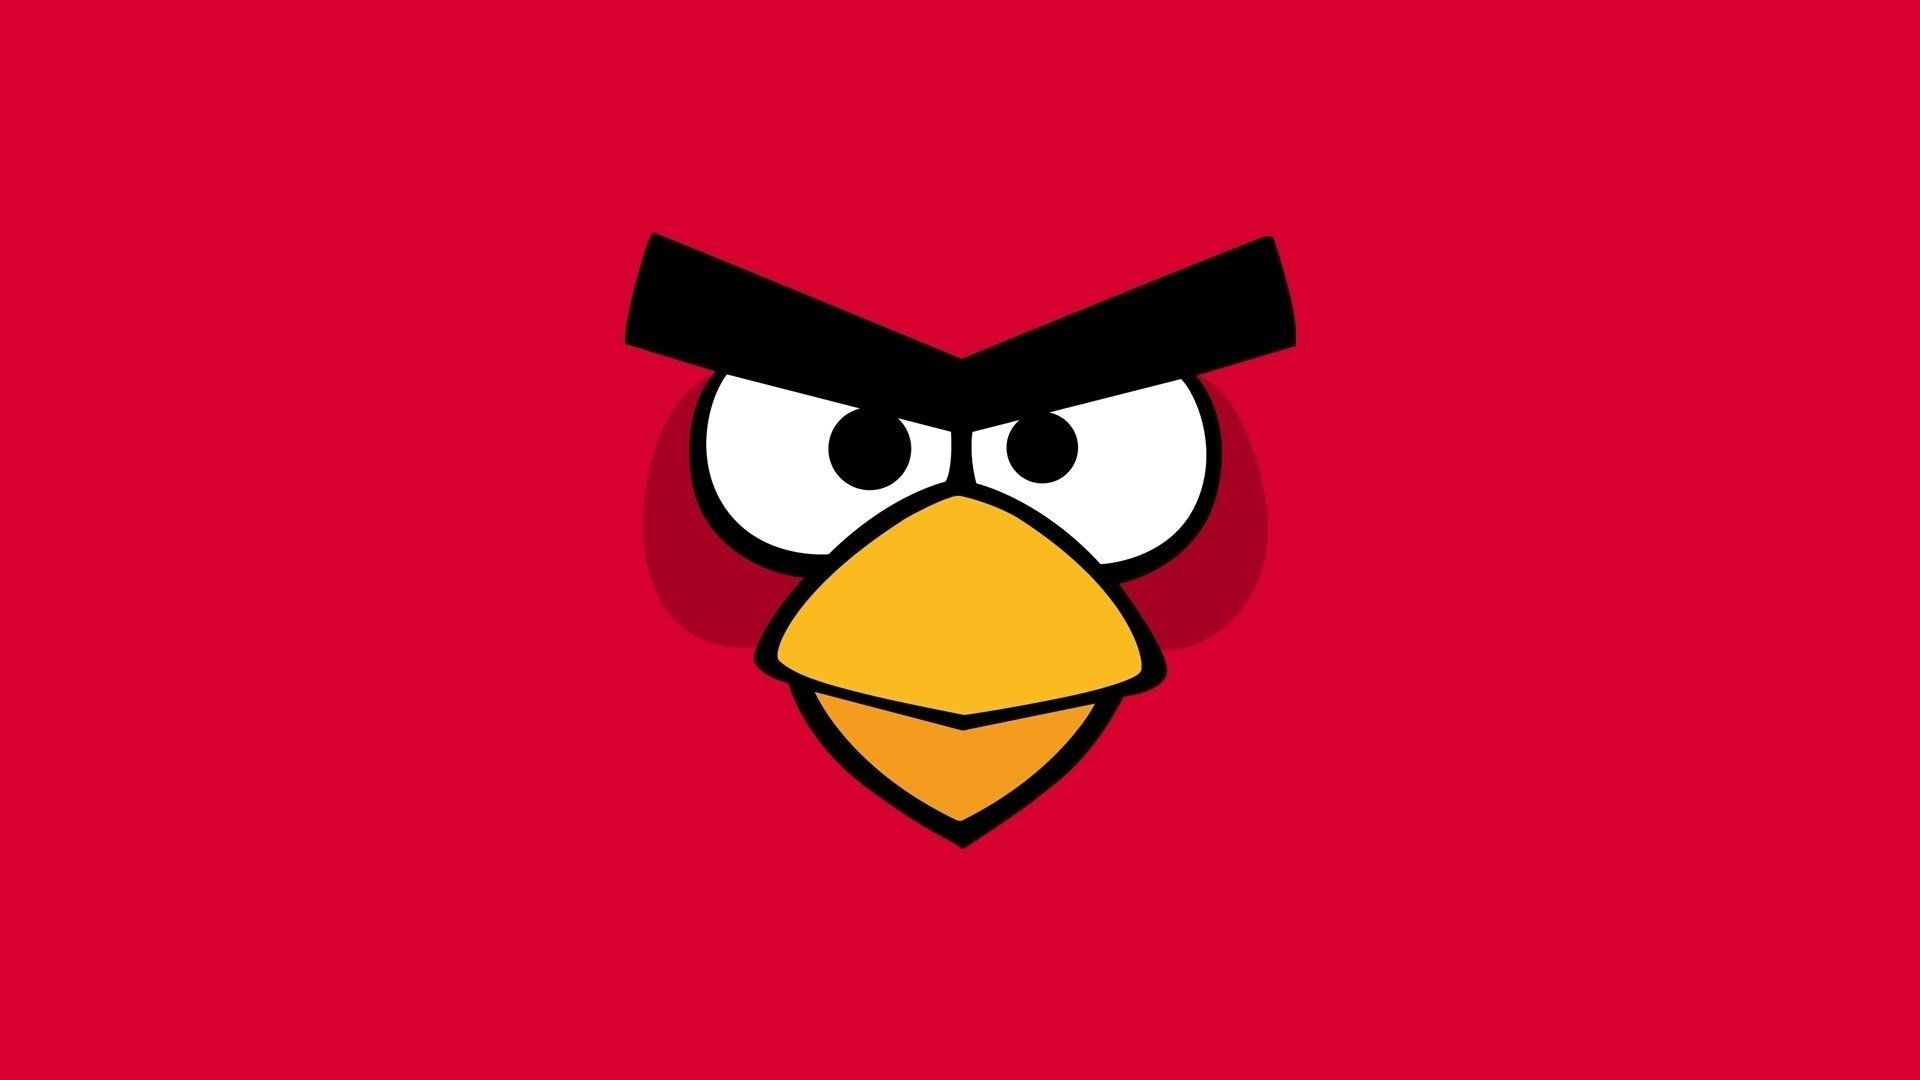 Angry Birds Wallpapers   Top Angry Birds Backgrounds 1920x1080